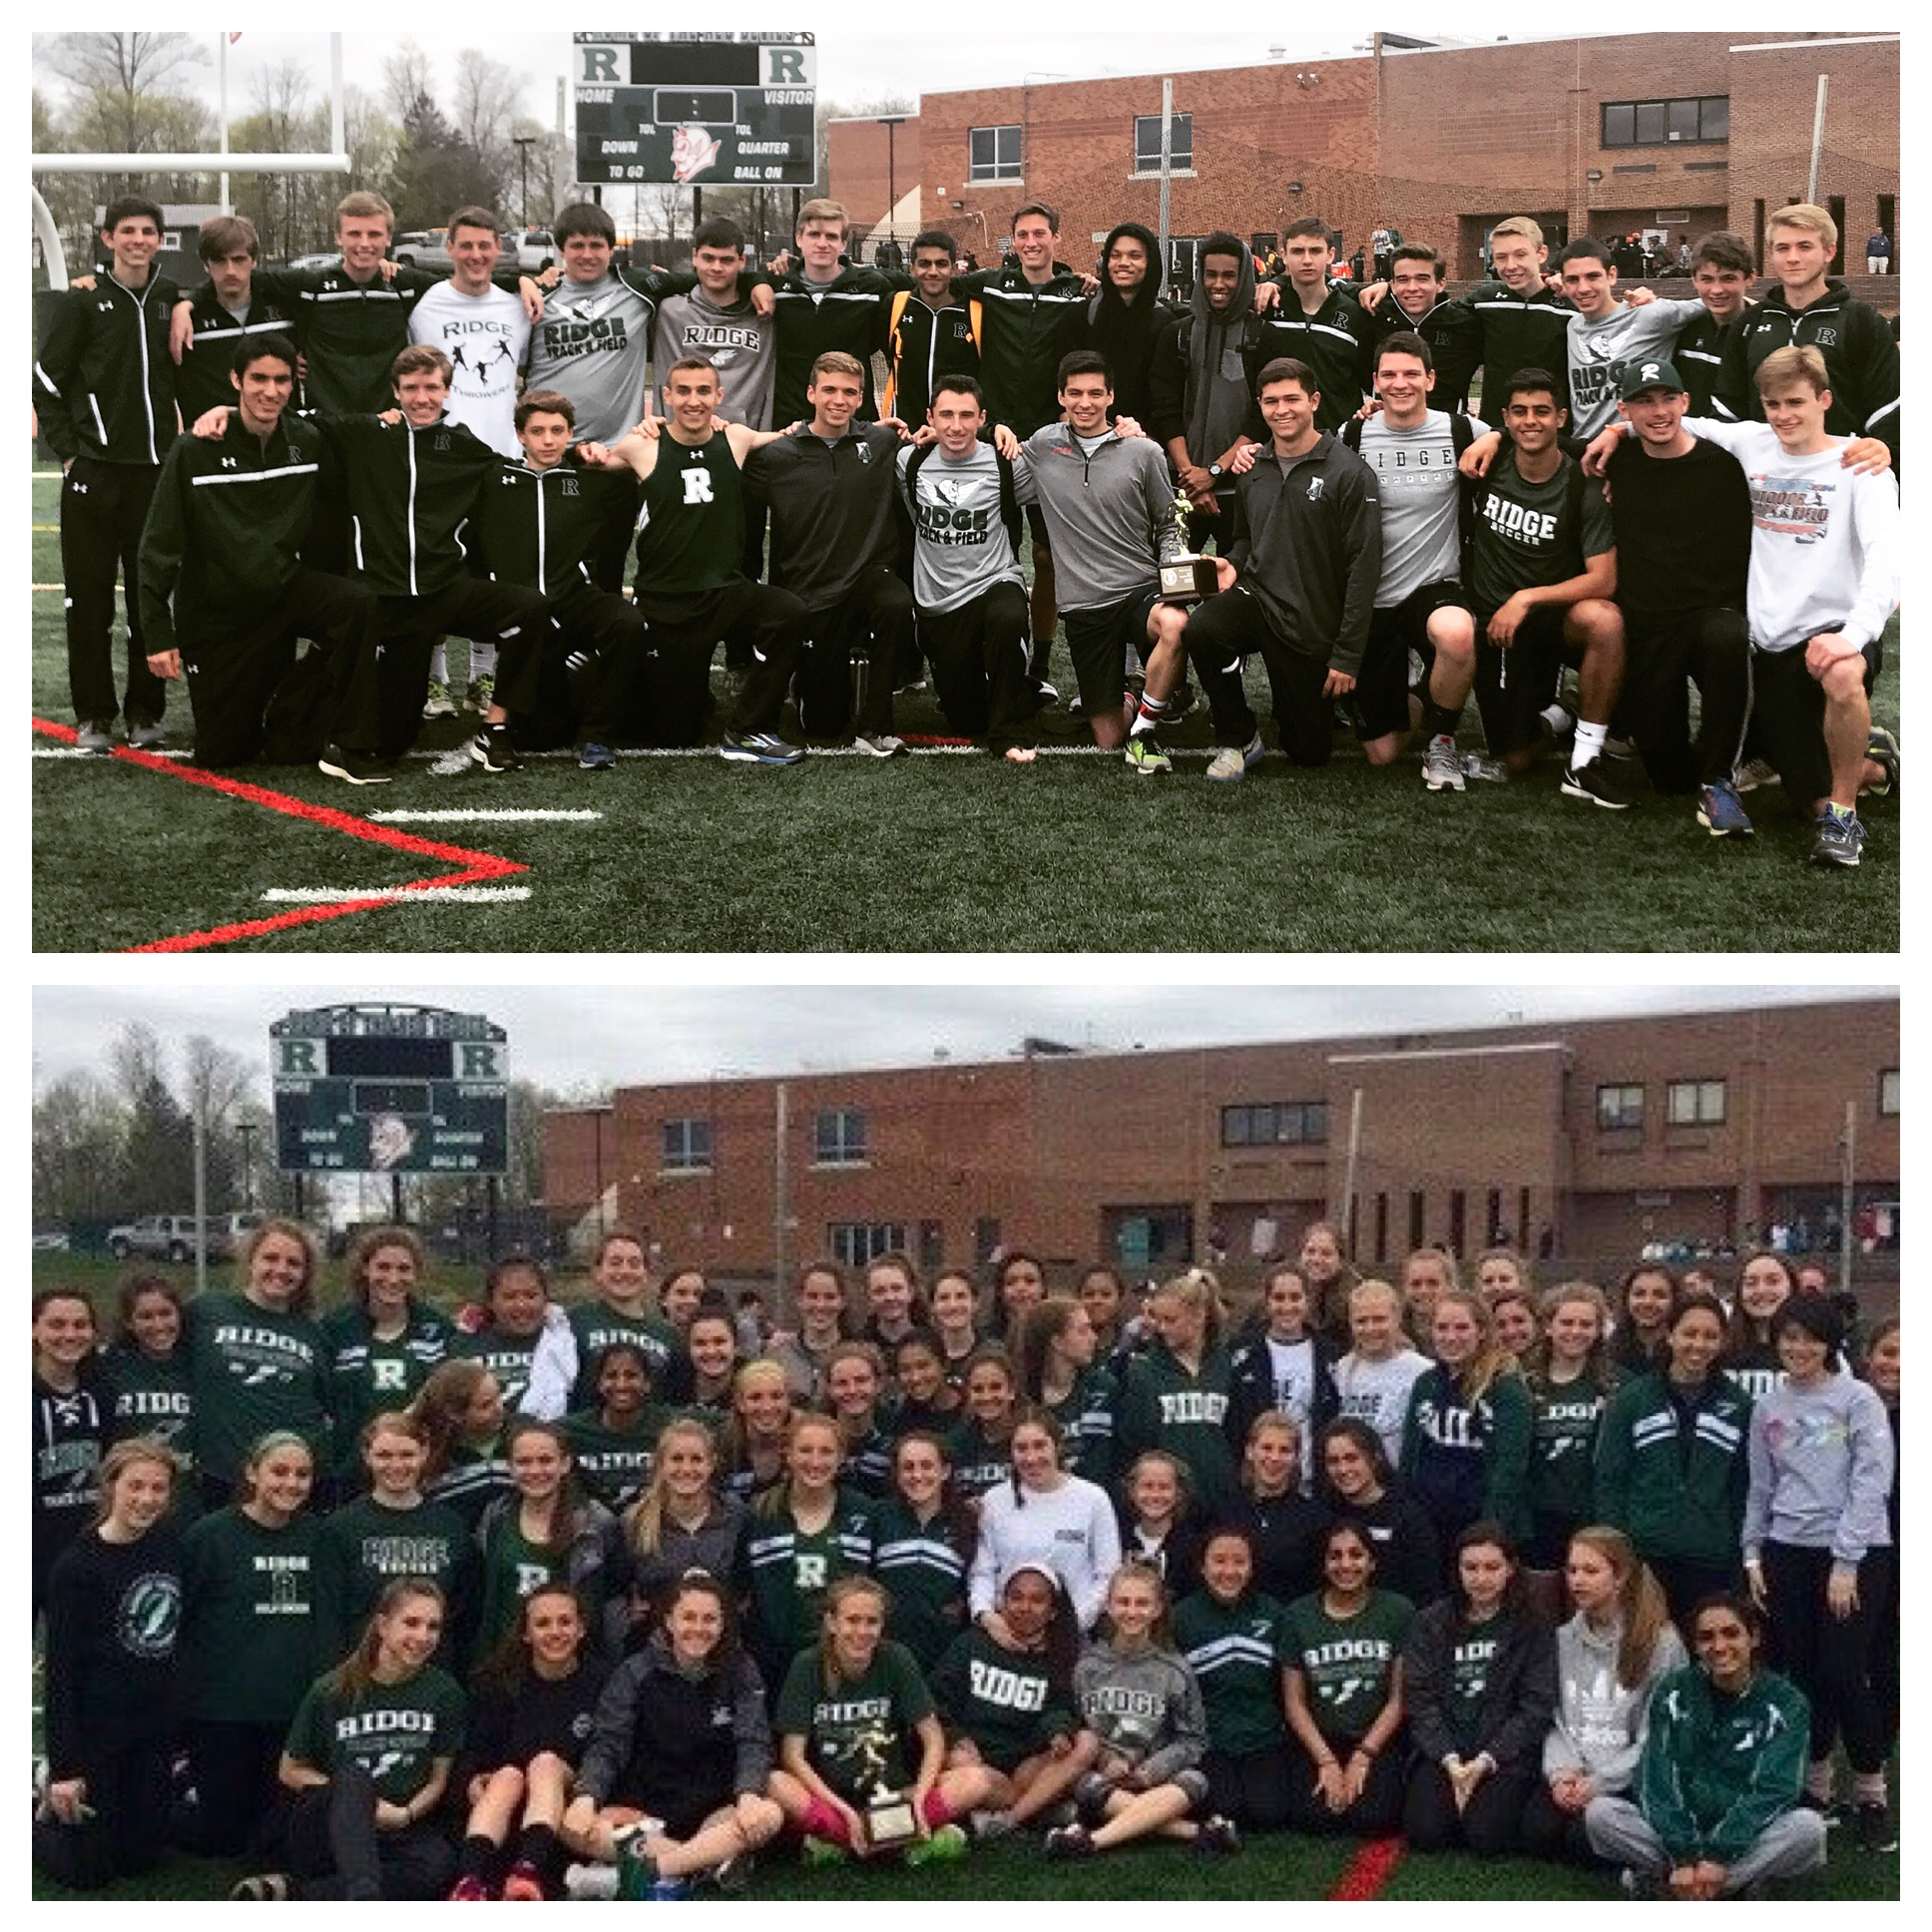 Somerset County Relay Champs!